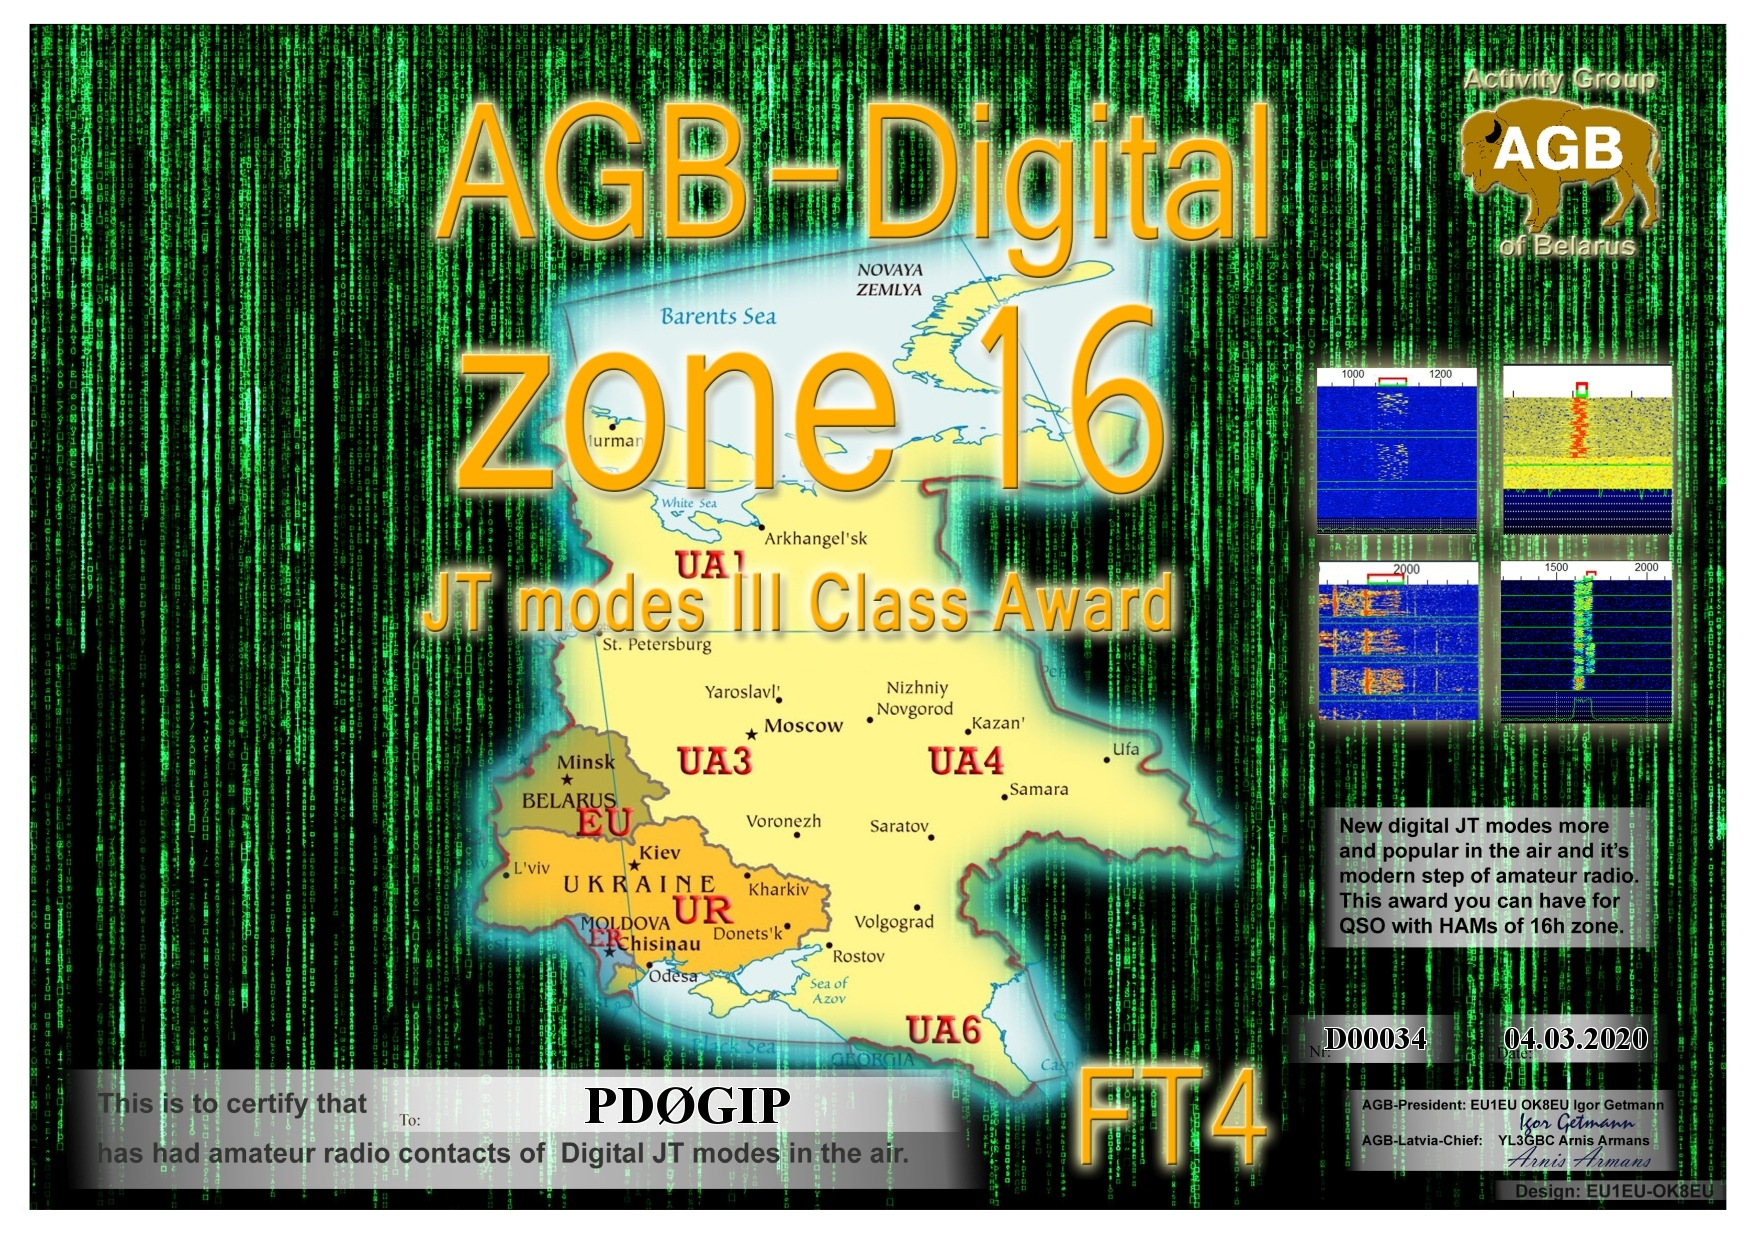 PD0GIP ZONE16 FT4 III AGB